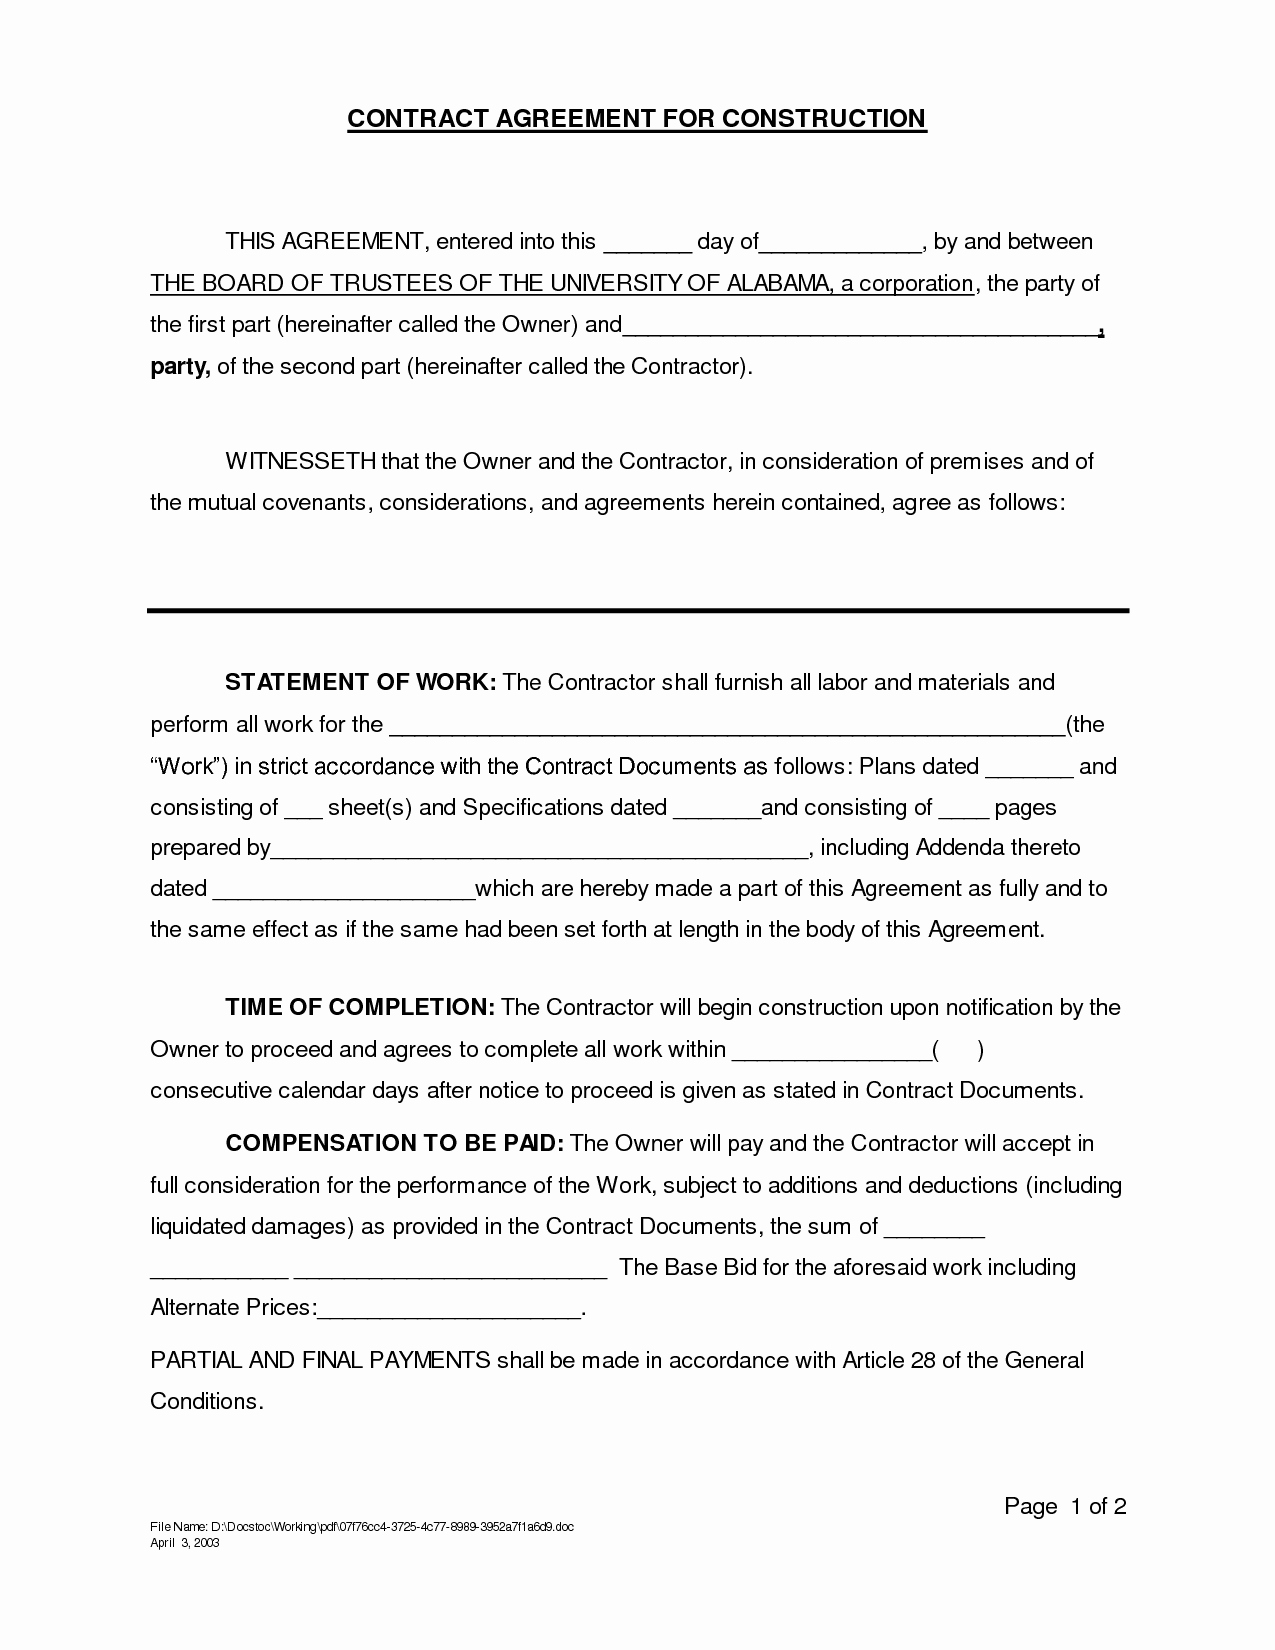 Contract for Construction Work Template Unique Contract for Construction Work Template